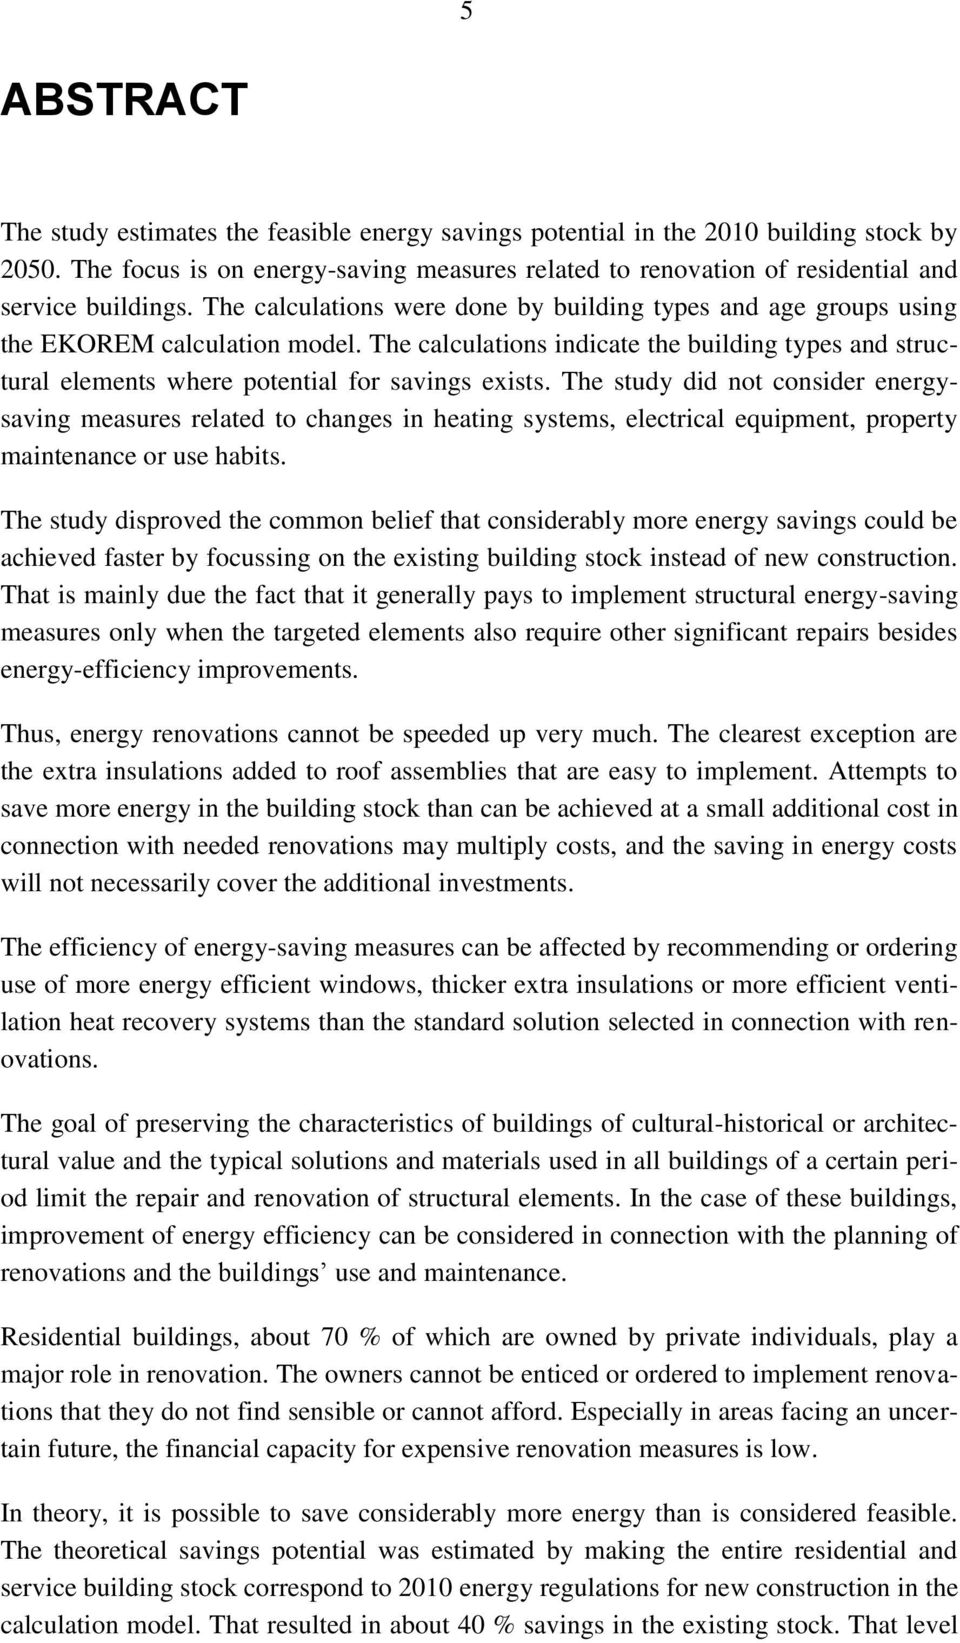 The study did not consider energysaving measures related to changes in heating systems, electrical equipment, property maintenance or use habits.